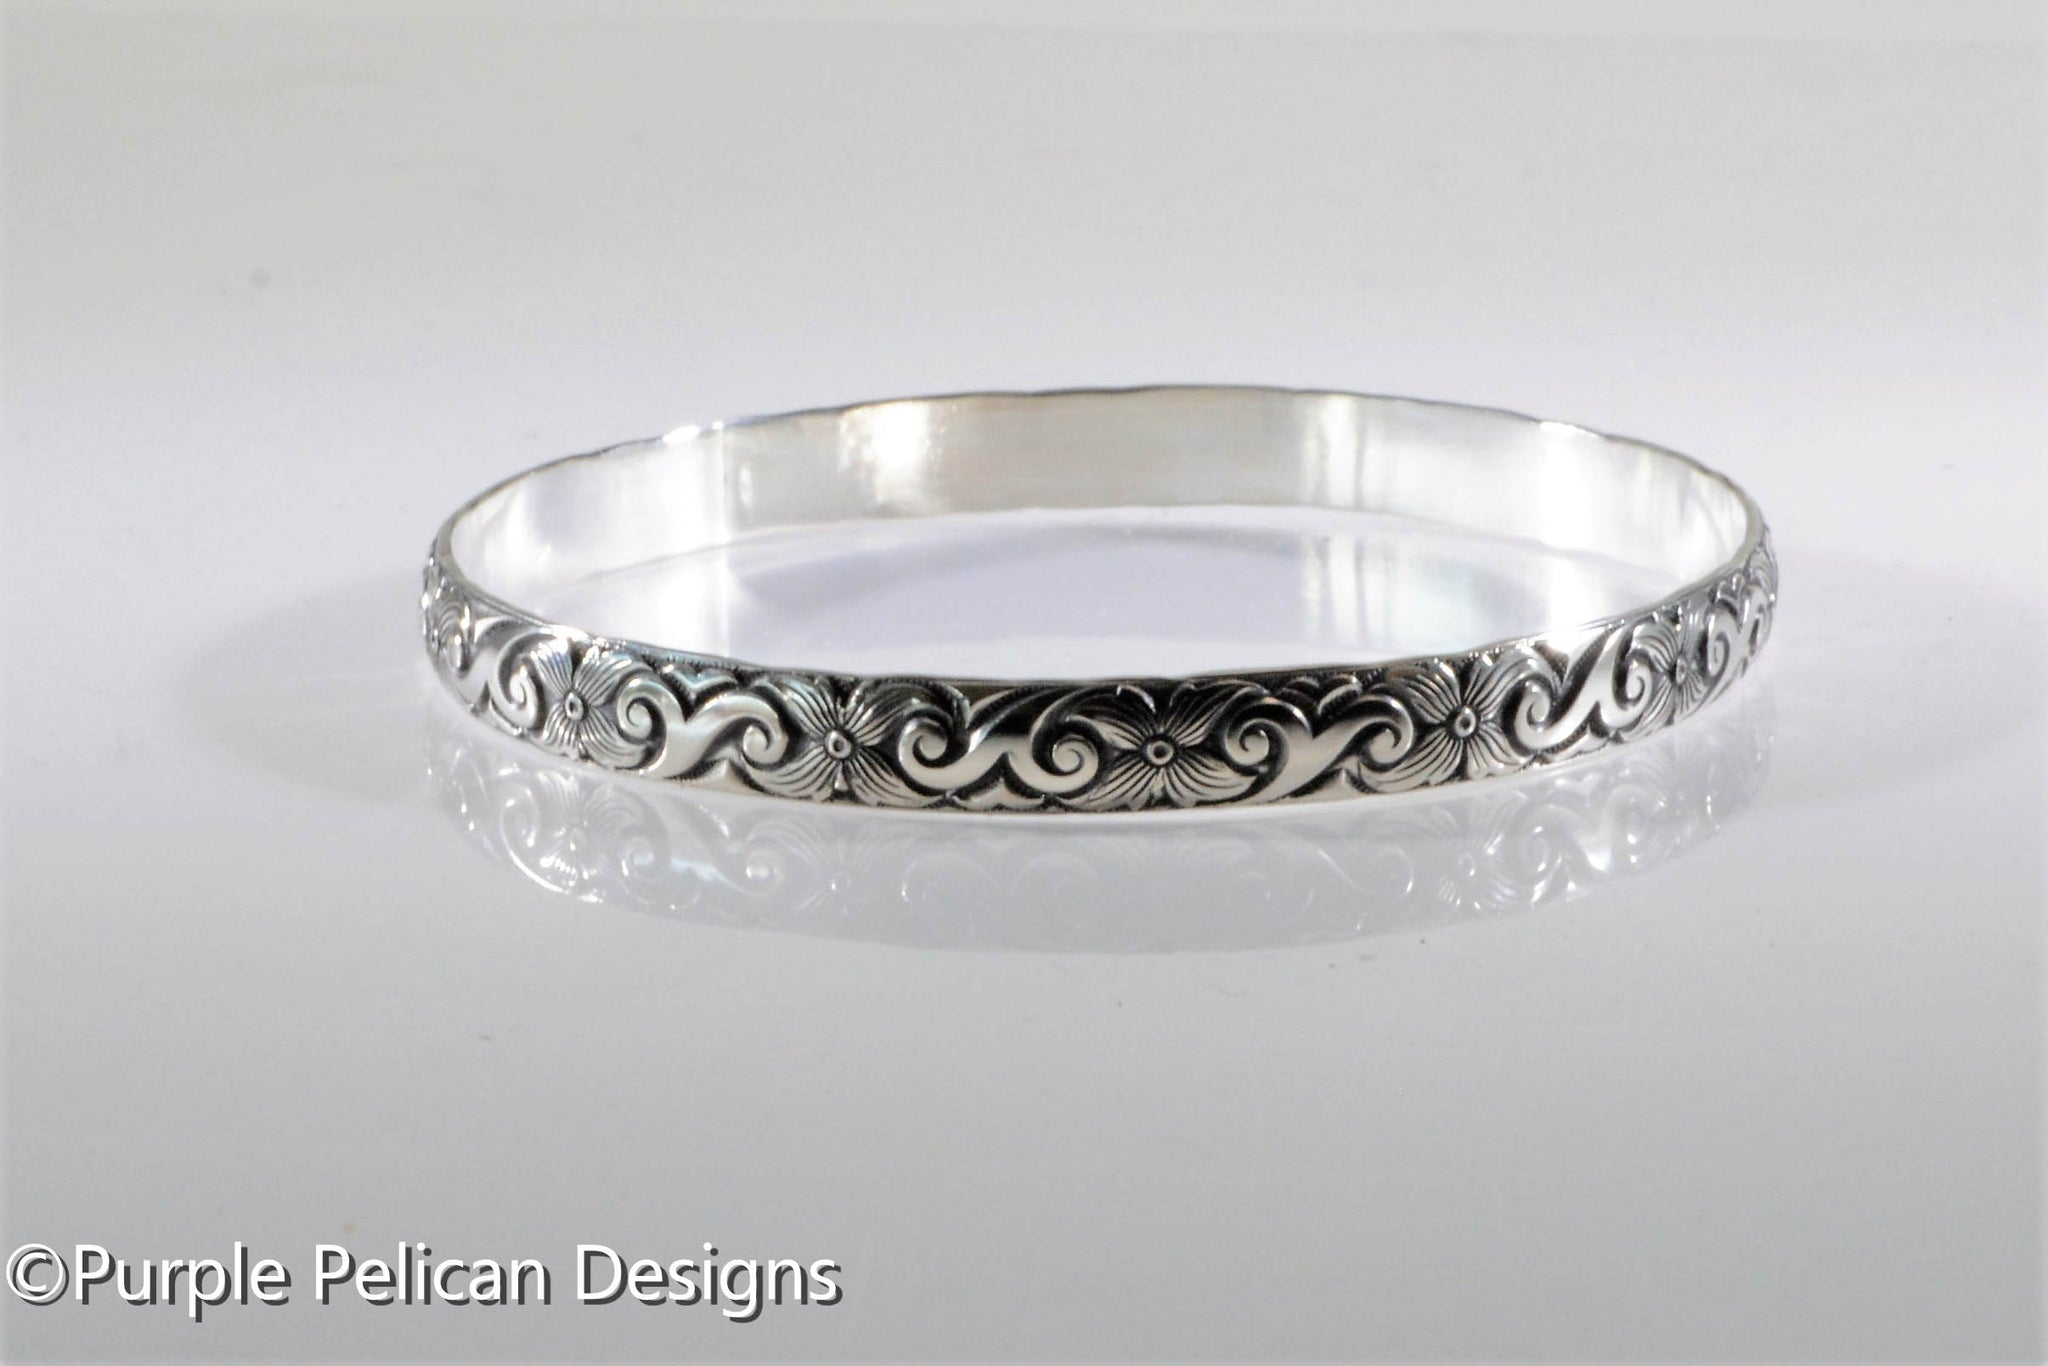 feaaa754ab552 Sterling Silver Bangle - Swirly Floral Design